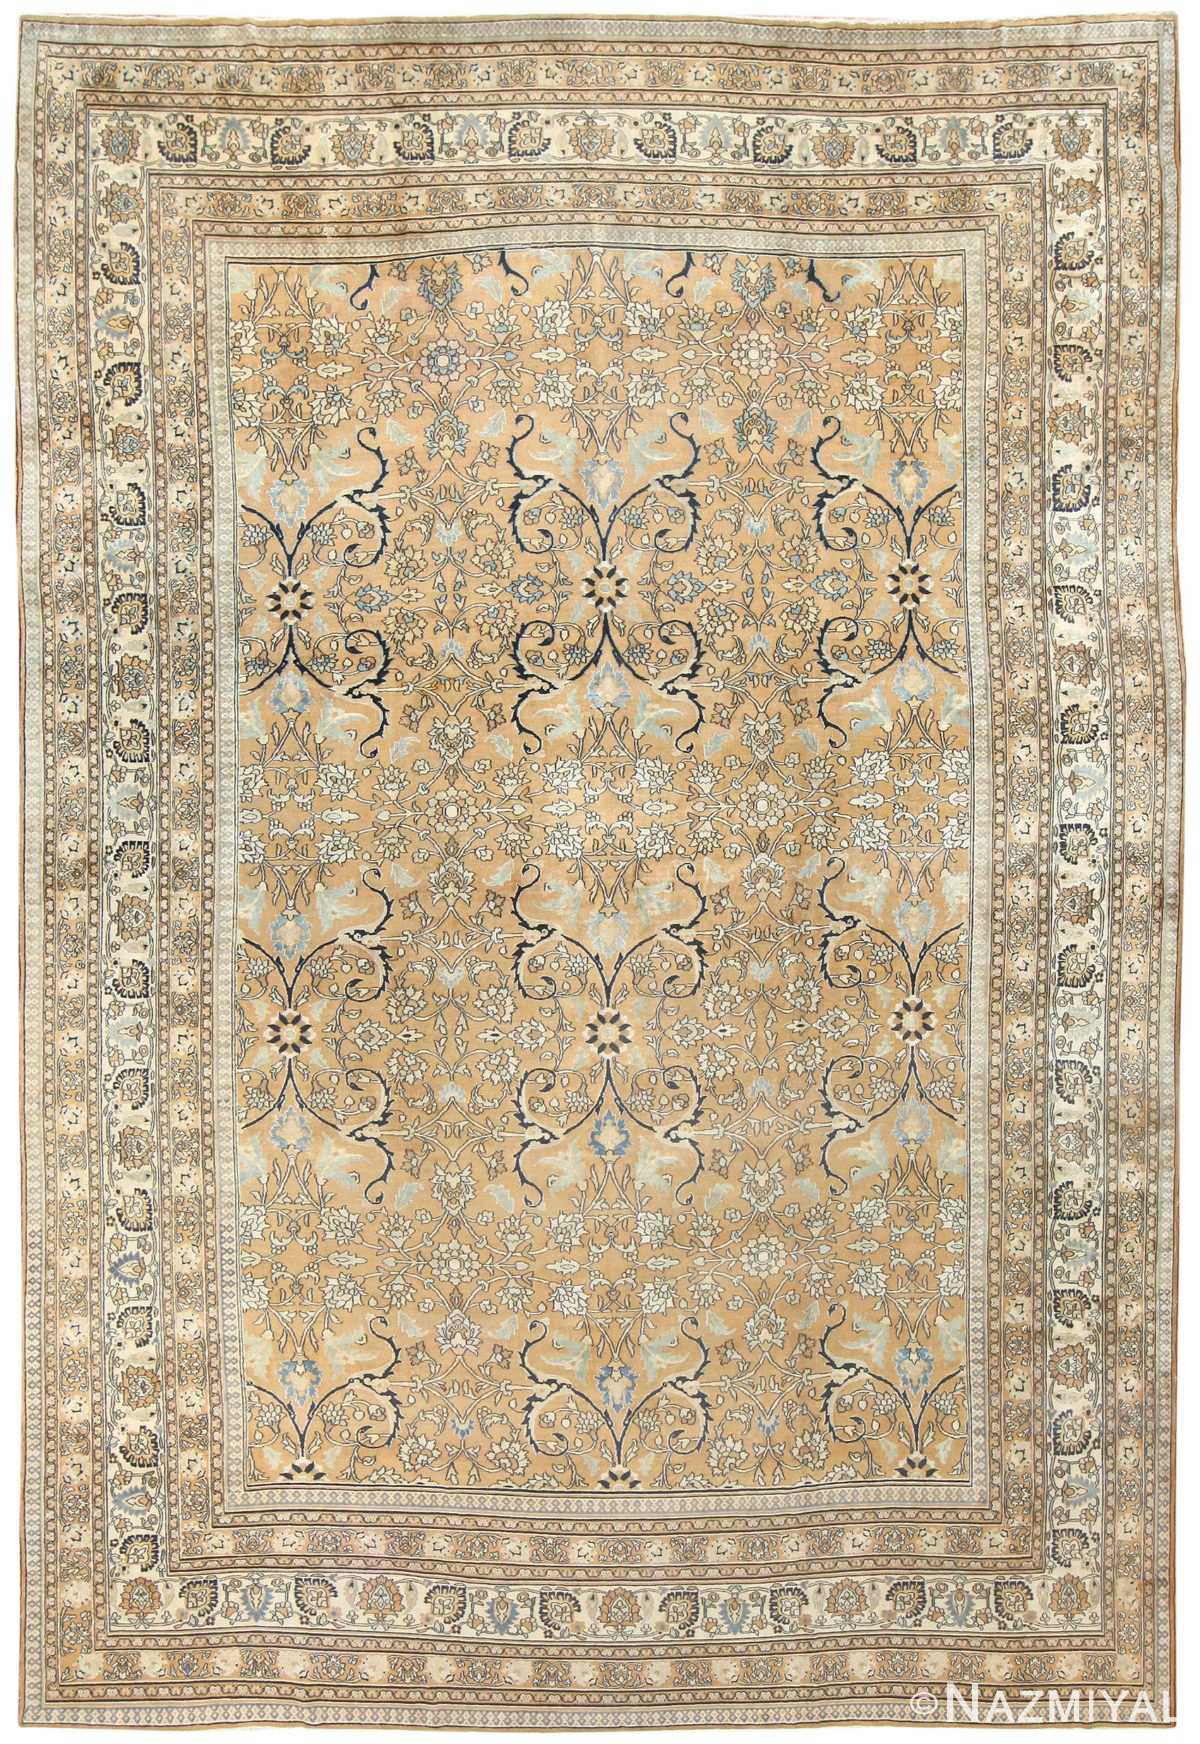 Antique Persian Khorassan Carpet 50072 Nazmiyal